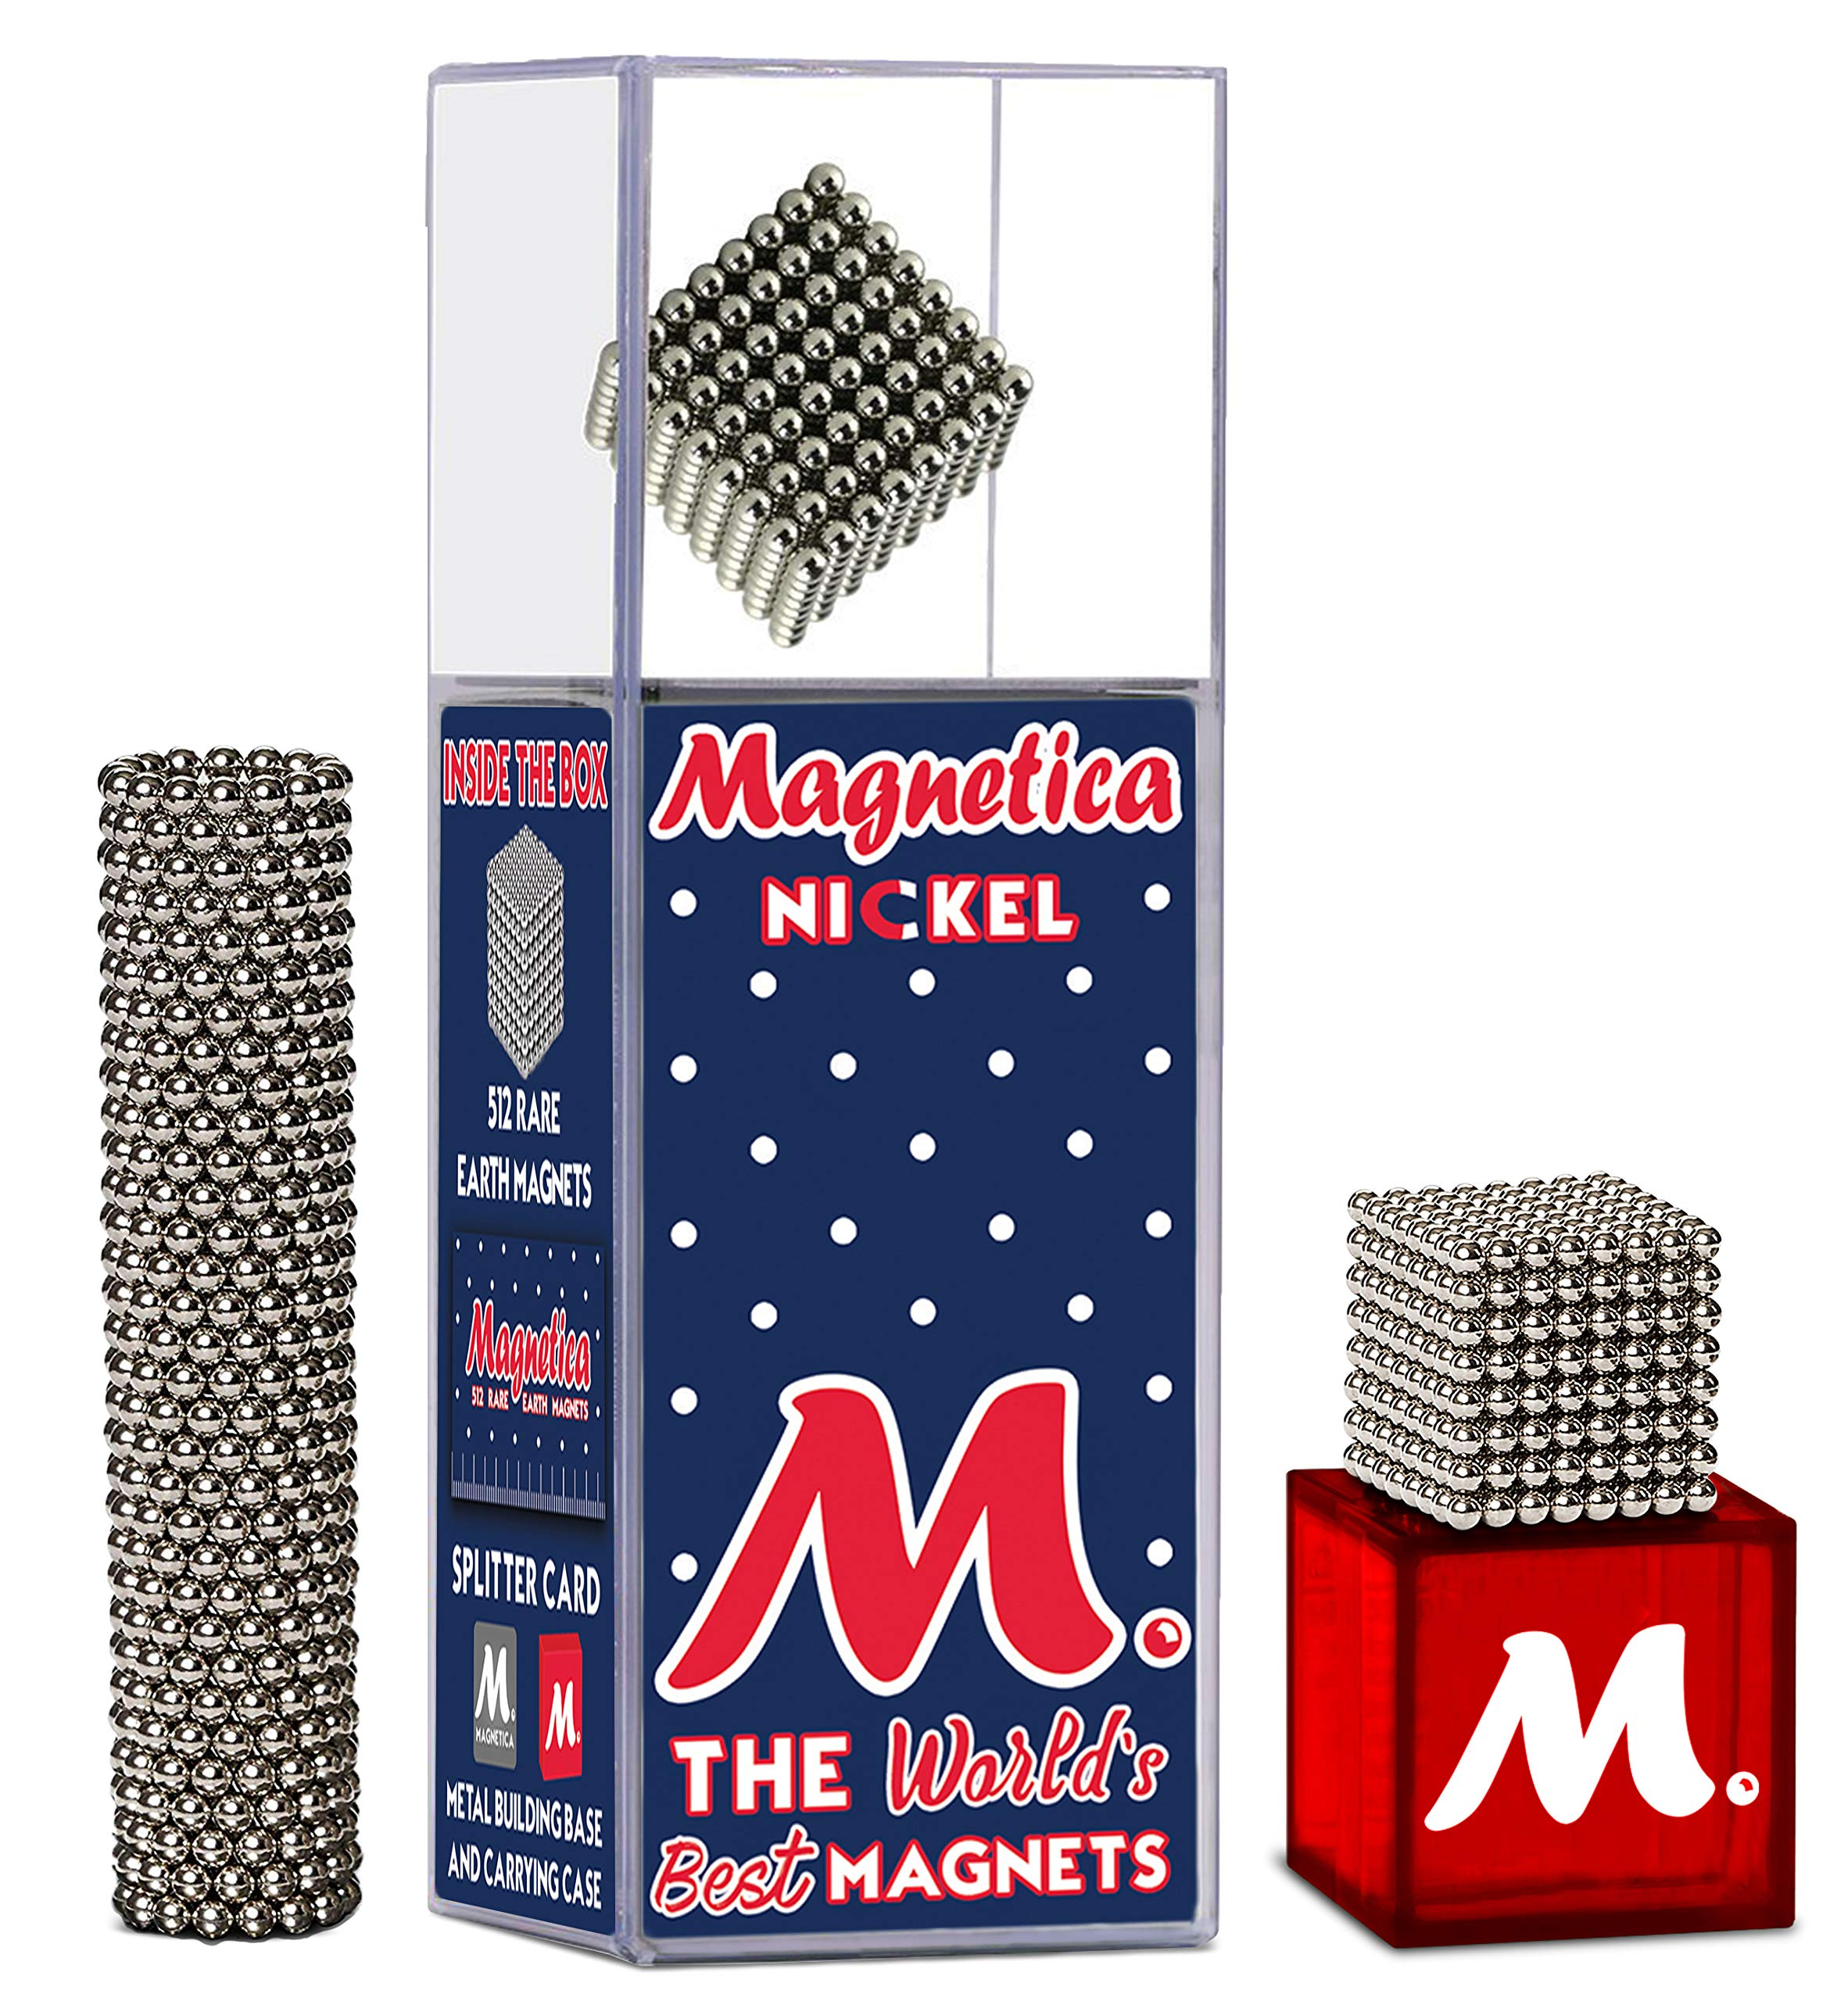 Magnetica Original Buildable Magnets (2.5mm) 512 Set for Sculpture Stress Relief Intelligence Development and Desk Toy for Adults | The World's Best Magnets!